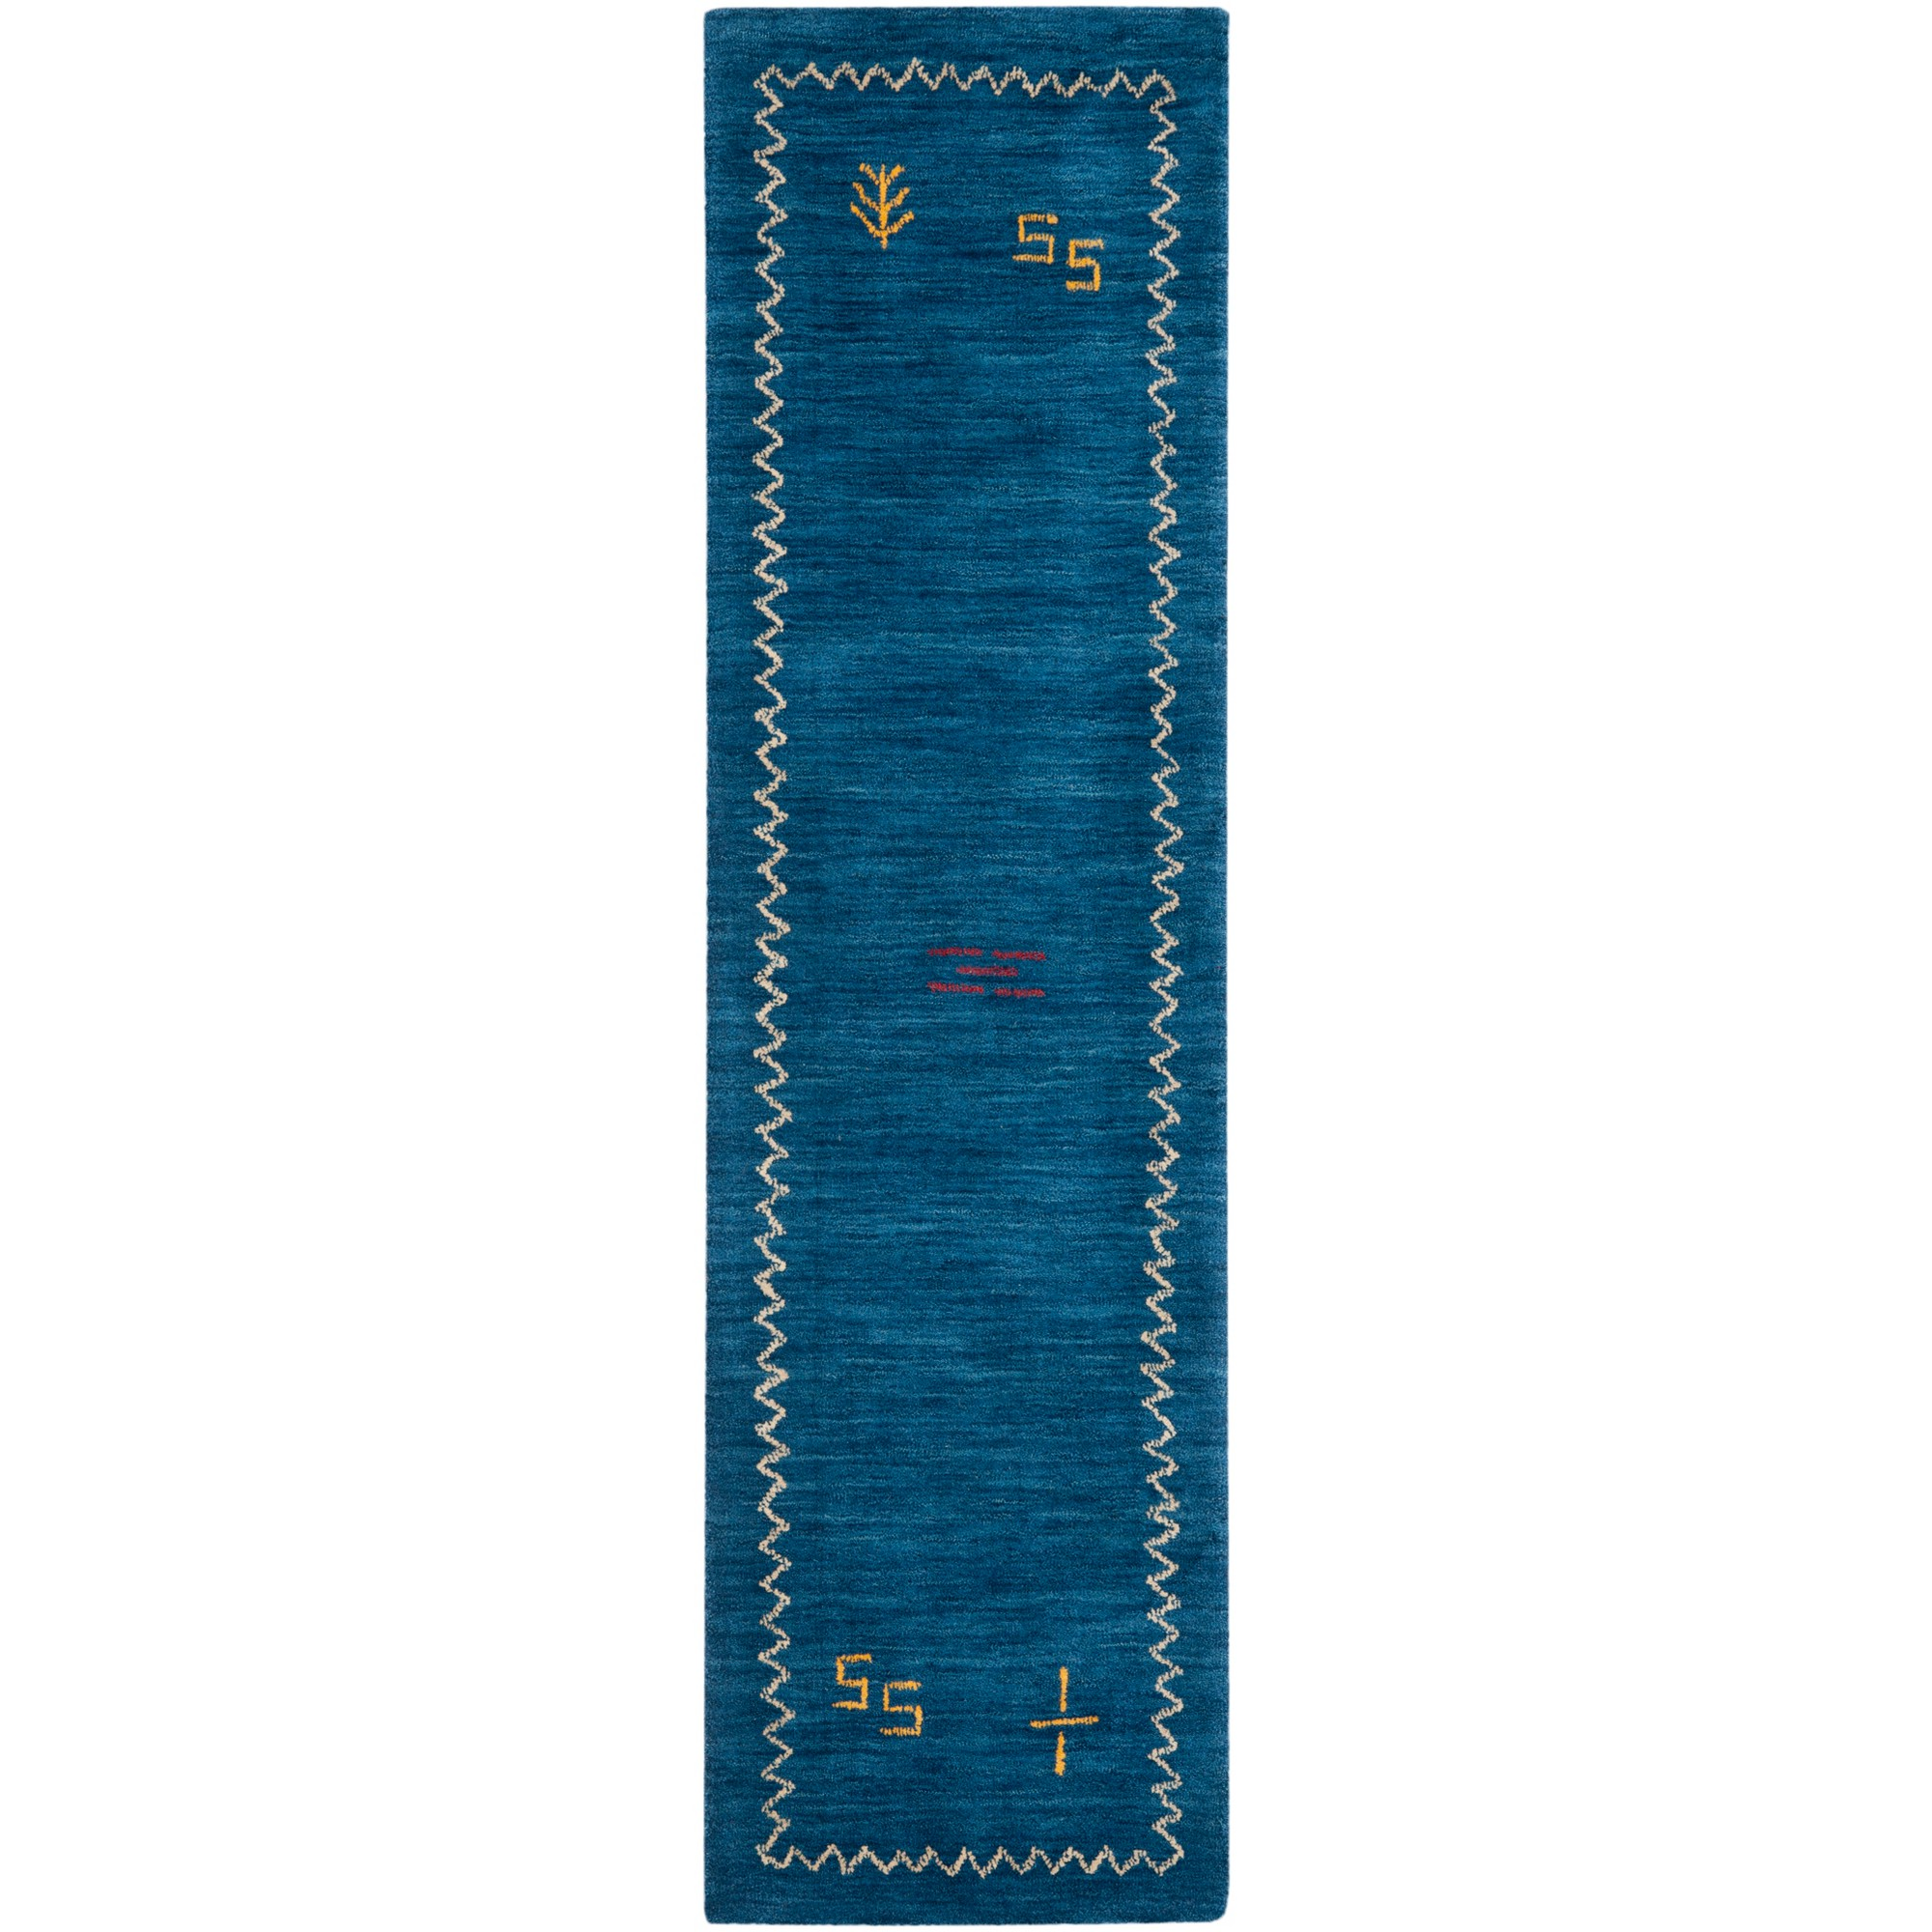 2'3X14' Loomed Tribal Design Runner Rug Blue - Safavieh